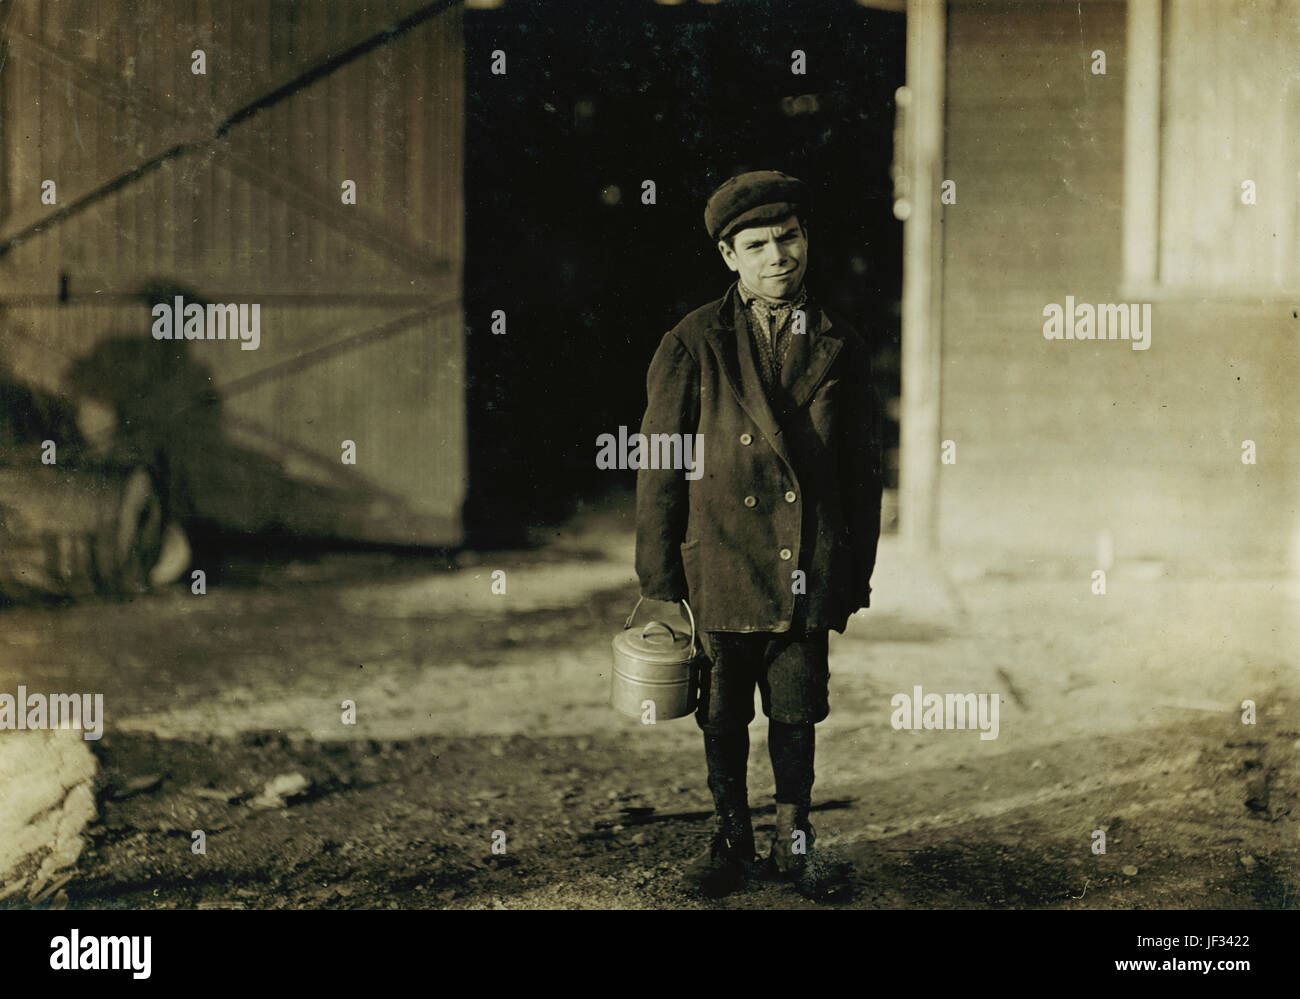 Title: Monongah Glass Co., Fairmont, W. Va. Jo Before a glass wks boy going home, 5 P.M. He says he is 12 years - Stock Image